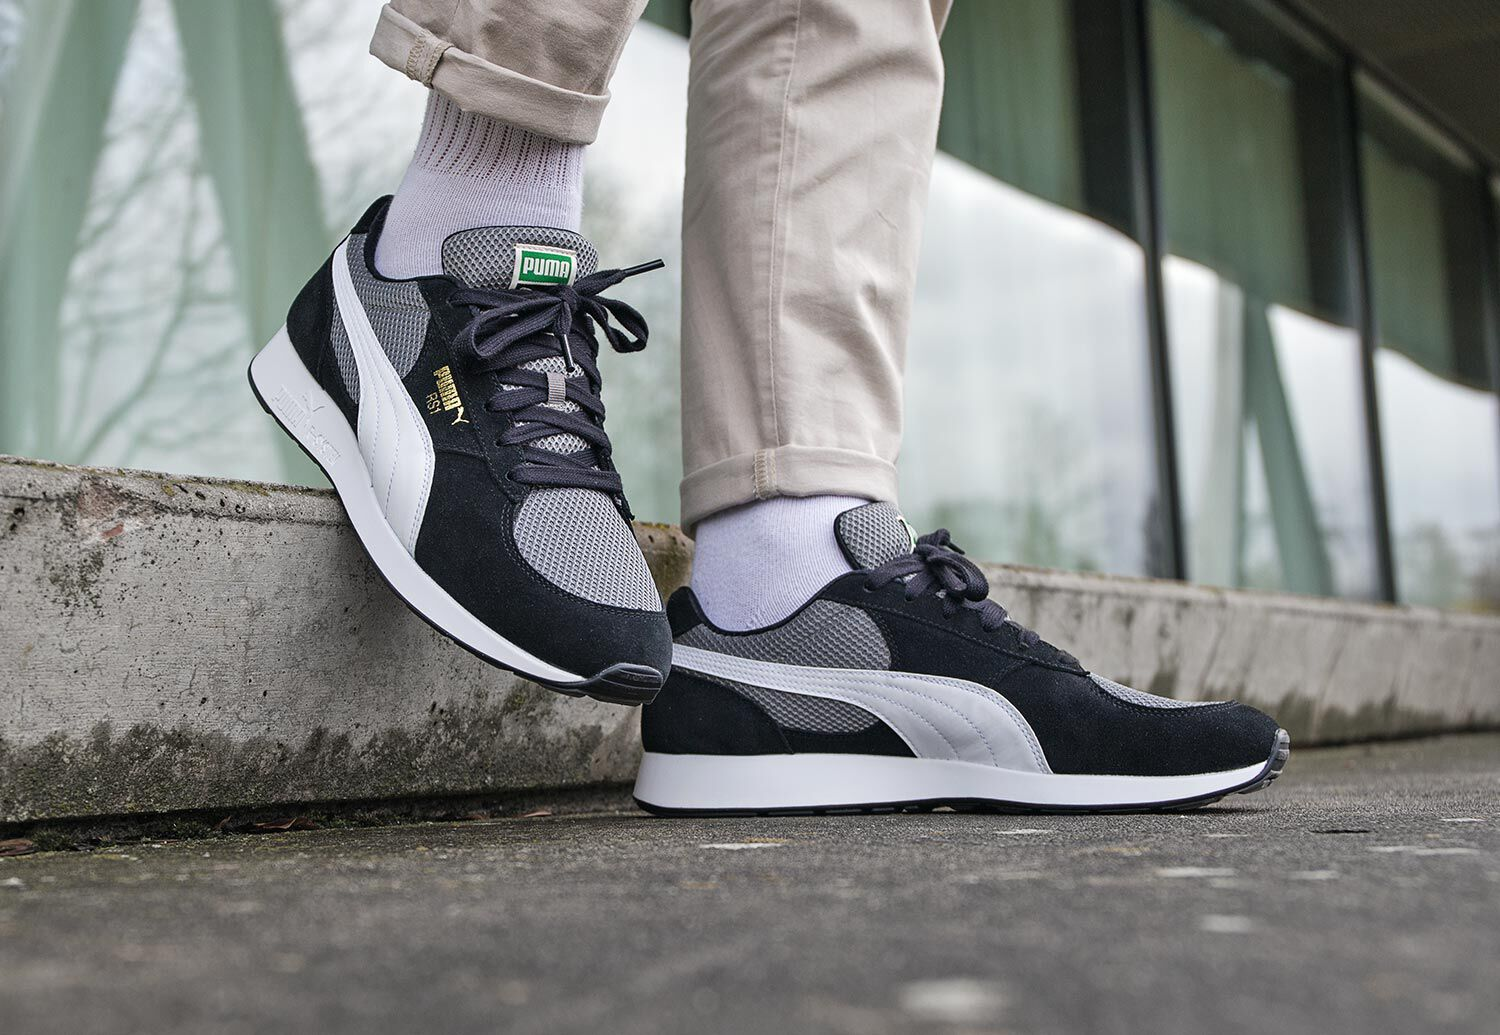 Puma RS-1 OG - Sneakers Low at Stylefile